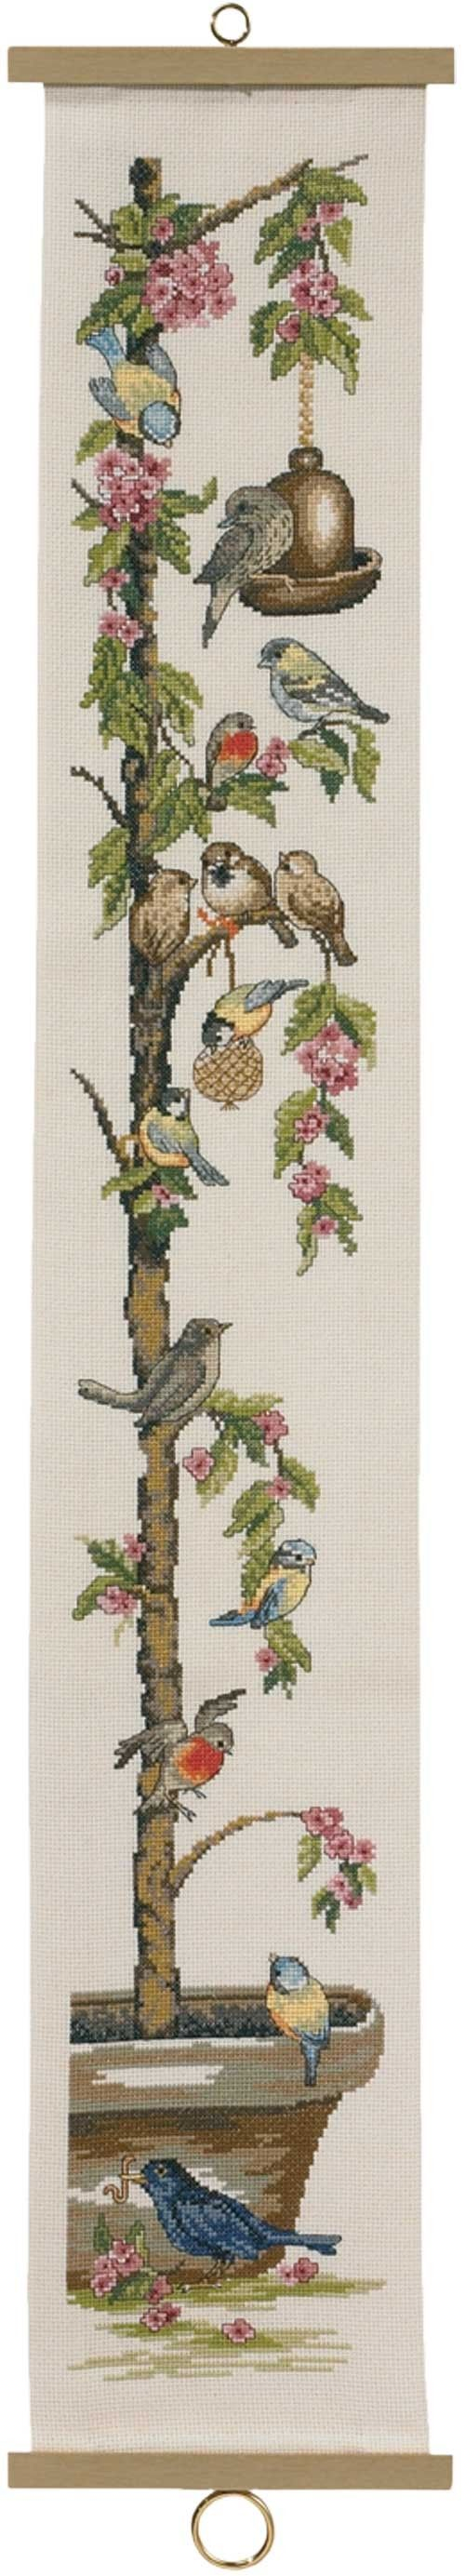 Feathered friends congregate at the prettiest meeting place in the garden.Counted cross-stitch kit includes 14-ct ivory Aida cloth, carded cotton floss, needle, chart and directions.6 1/2